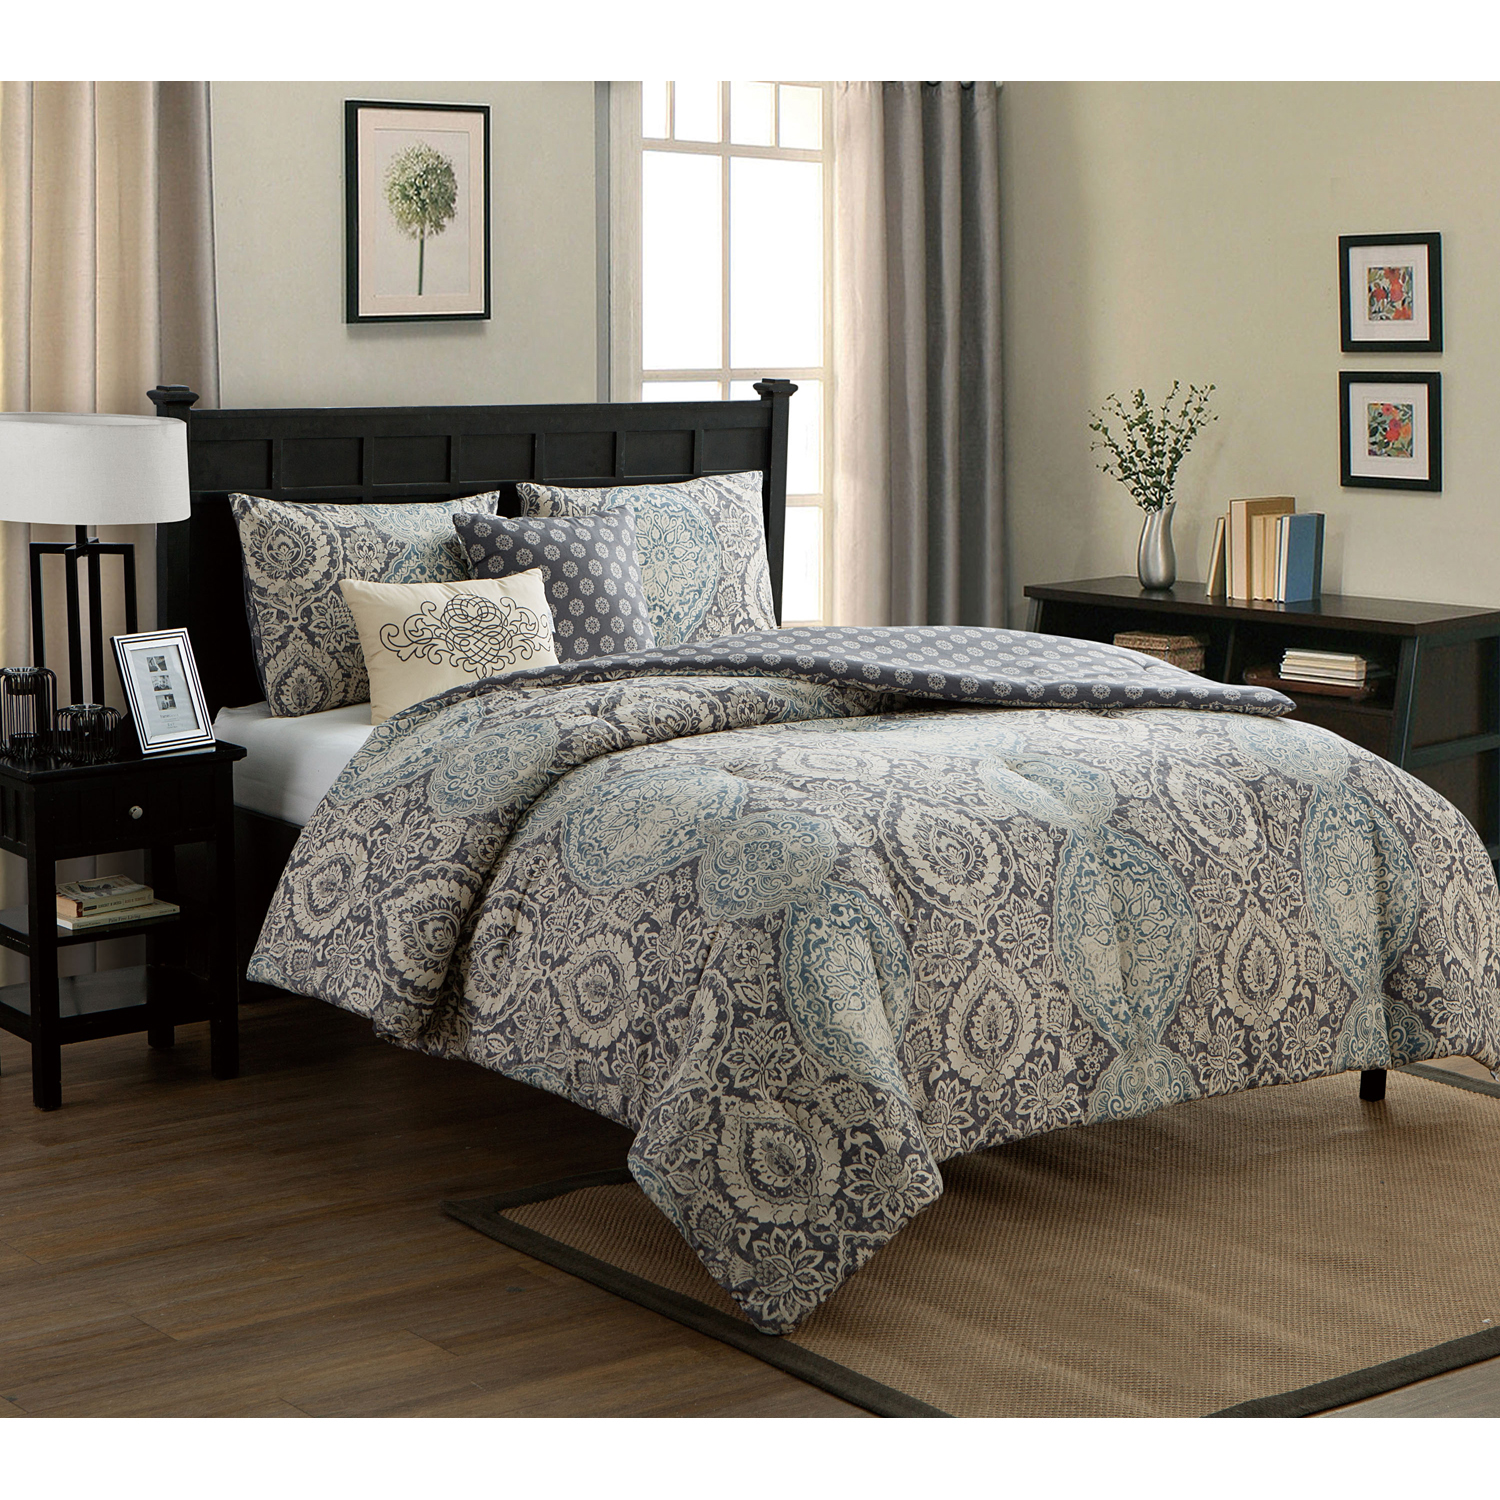 VCNY Home Blue Valencia 4/5 Piece Comforter Bedding Set, Decorative Pillows Included